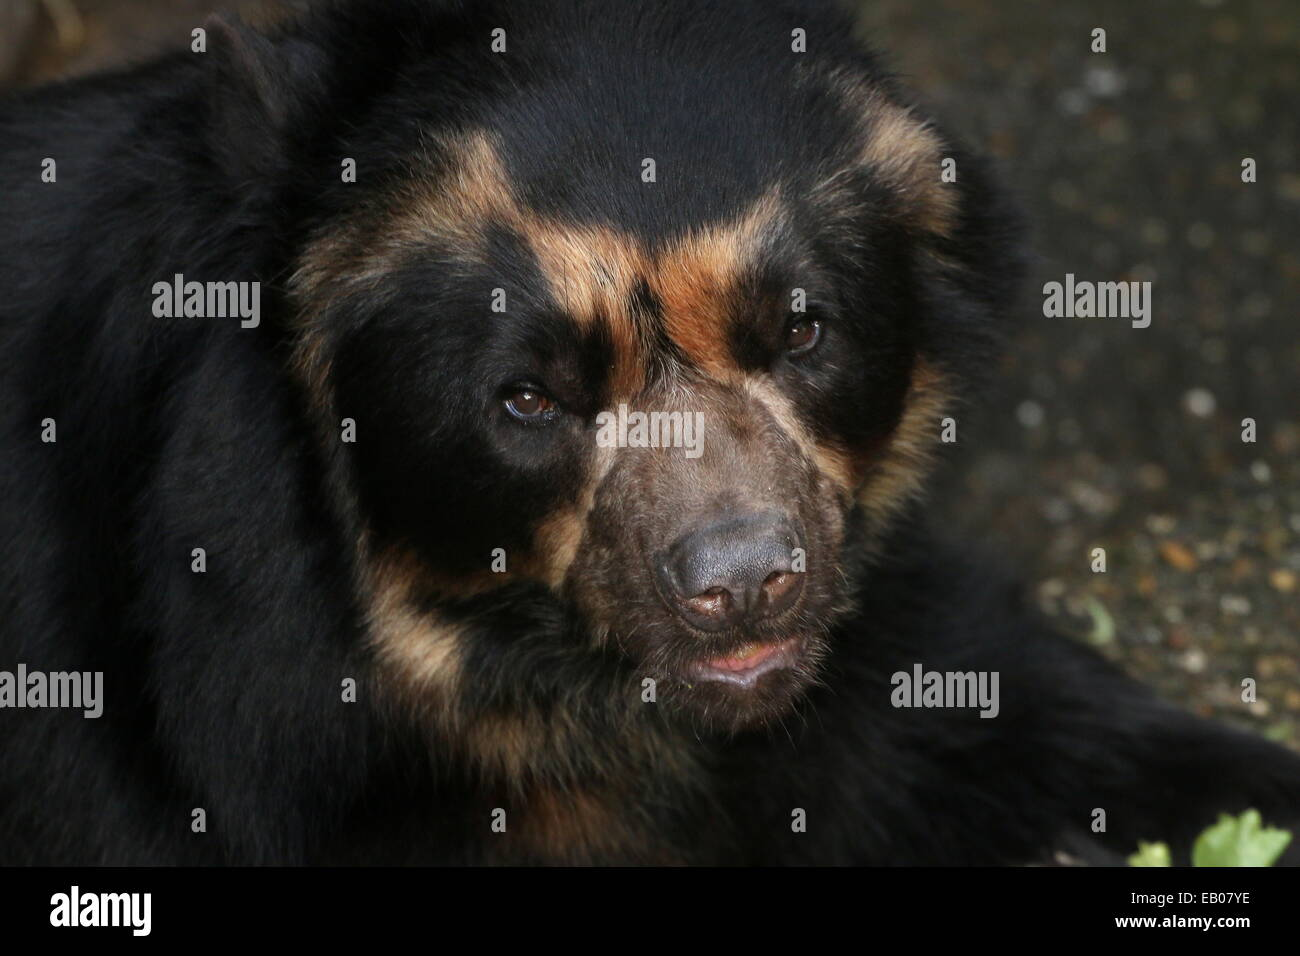 Spectacled or  Andean bear (Tremarctos ornatus) close-up of the head, facing camera Stock Photo